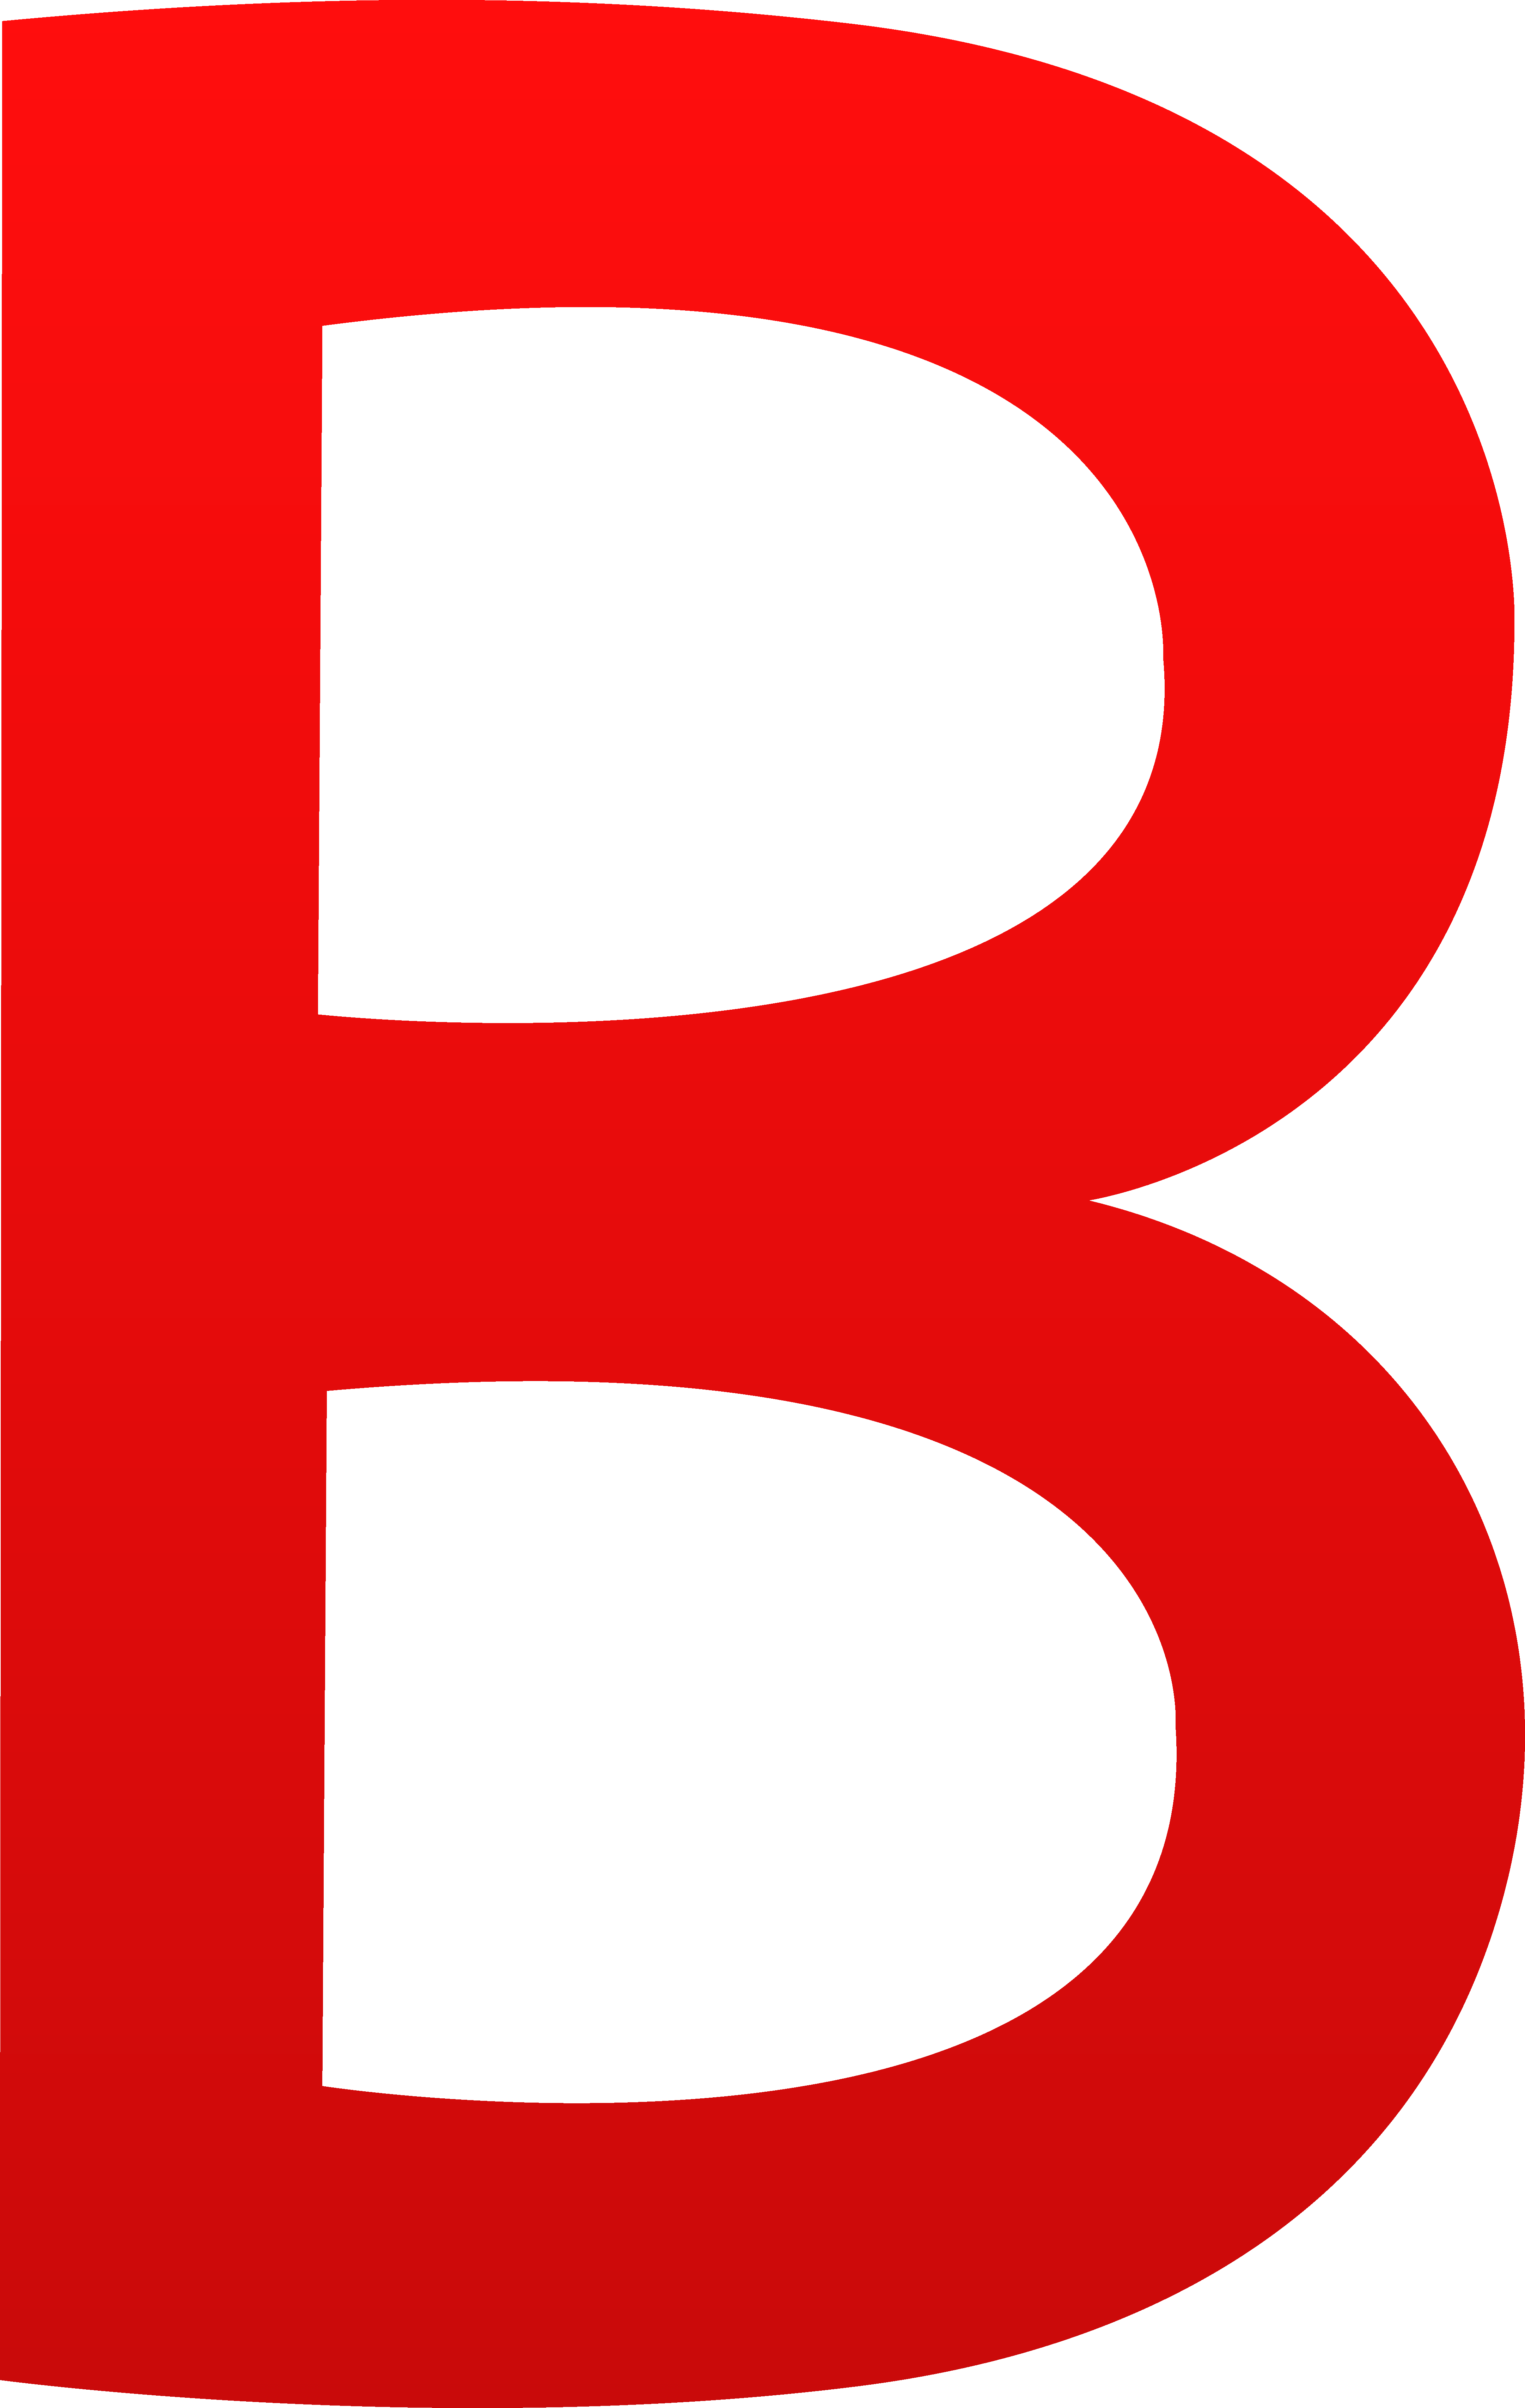 The Letter B - Free Clip Art - Cliparts.co